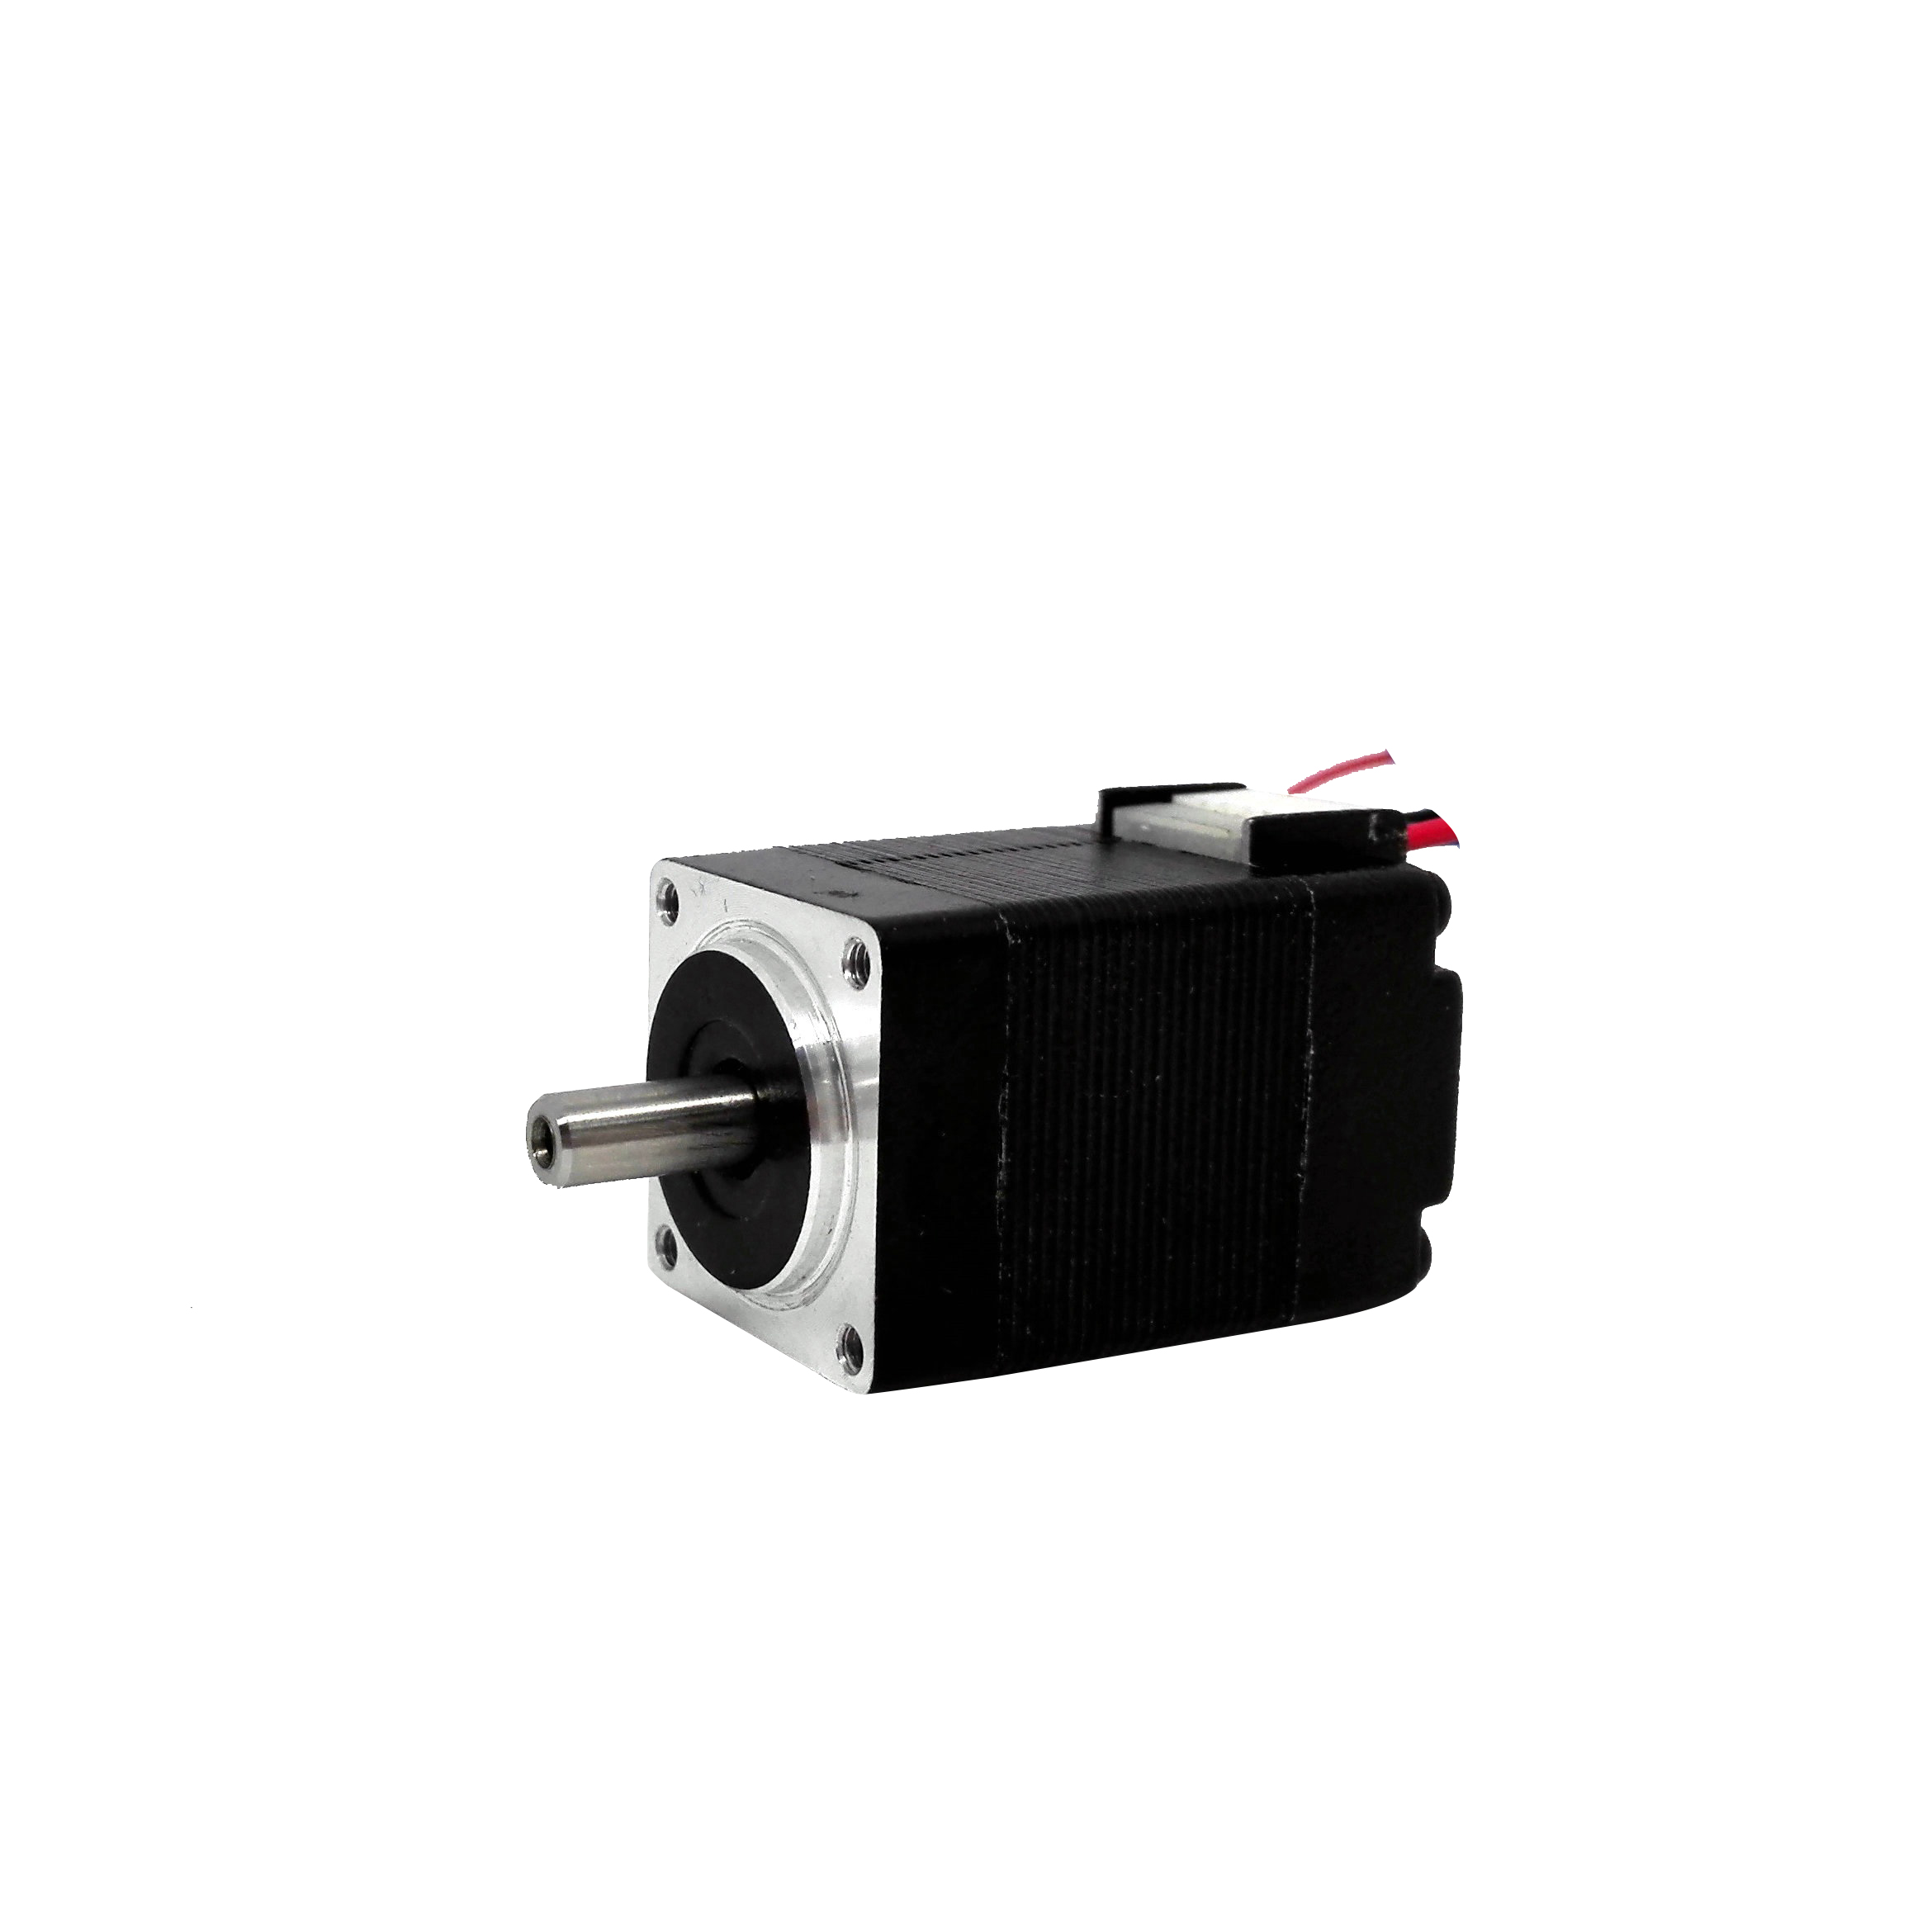 Wiring Plc To Stepper Motor